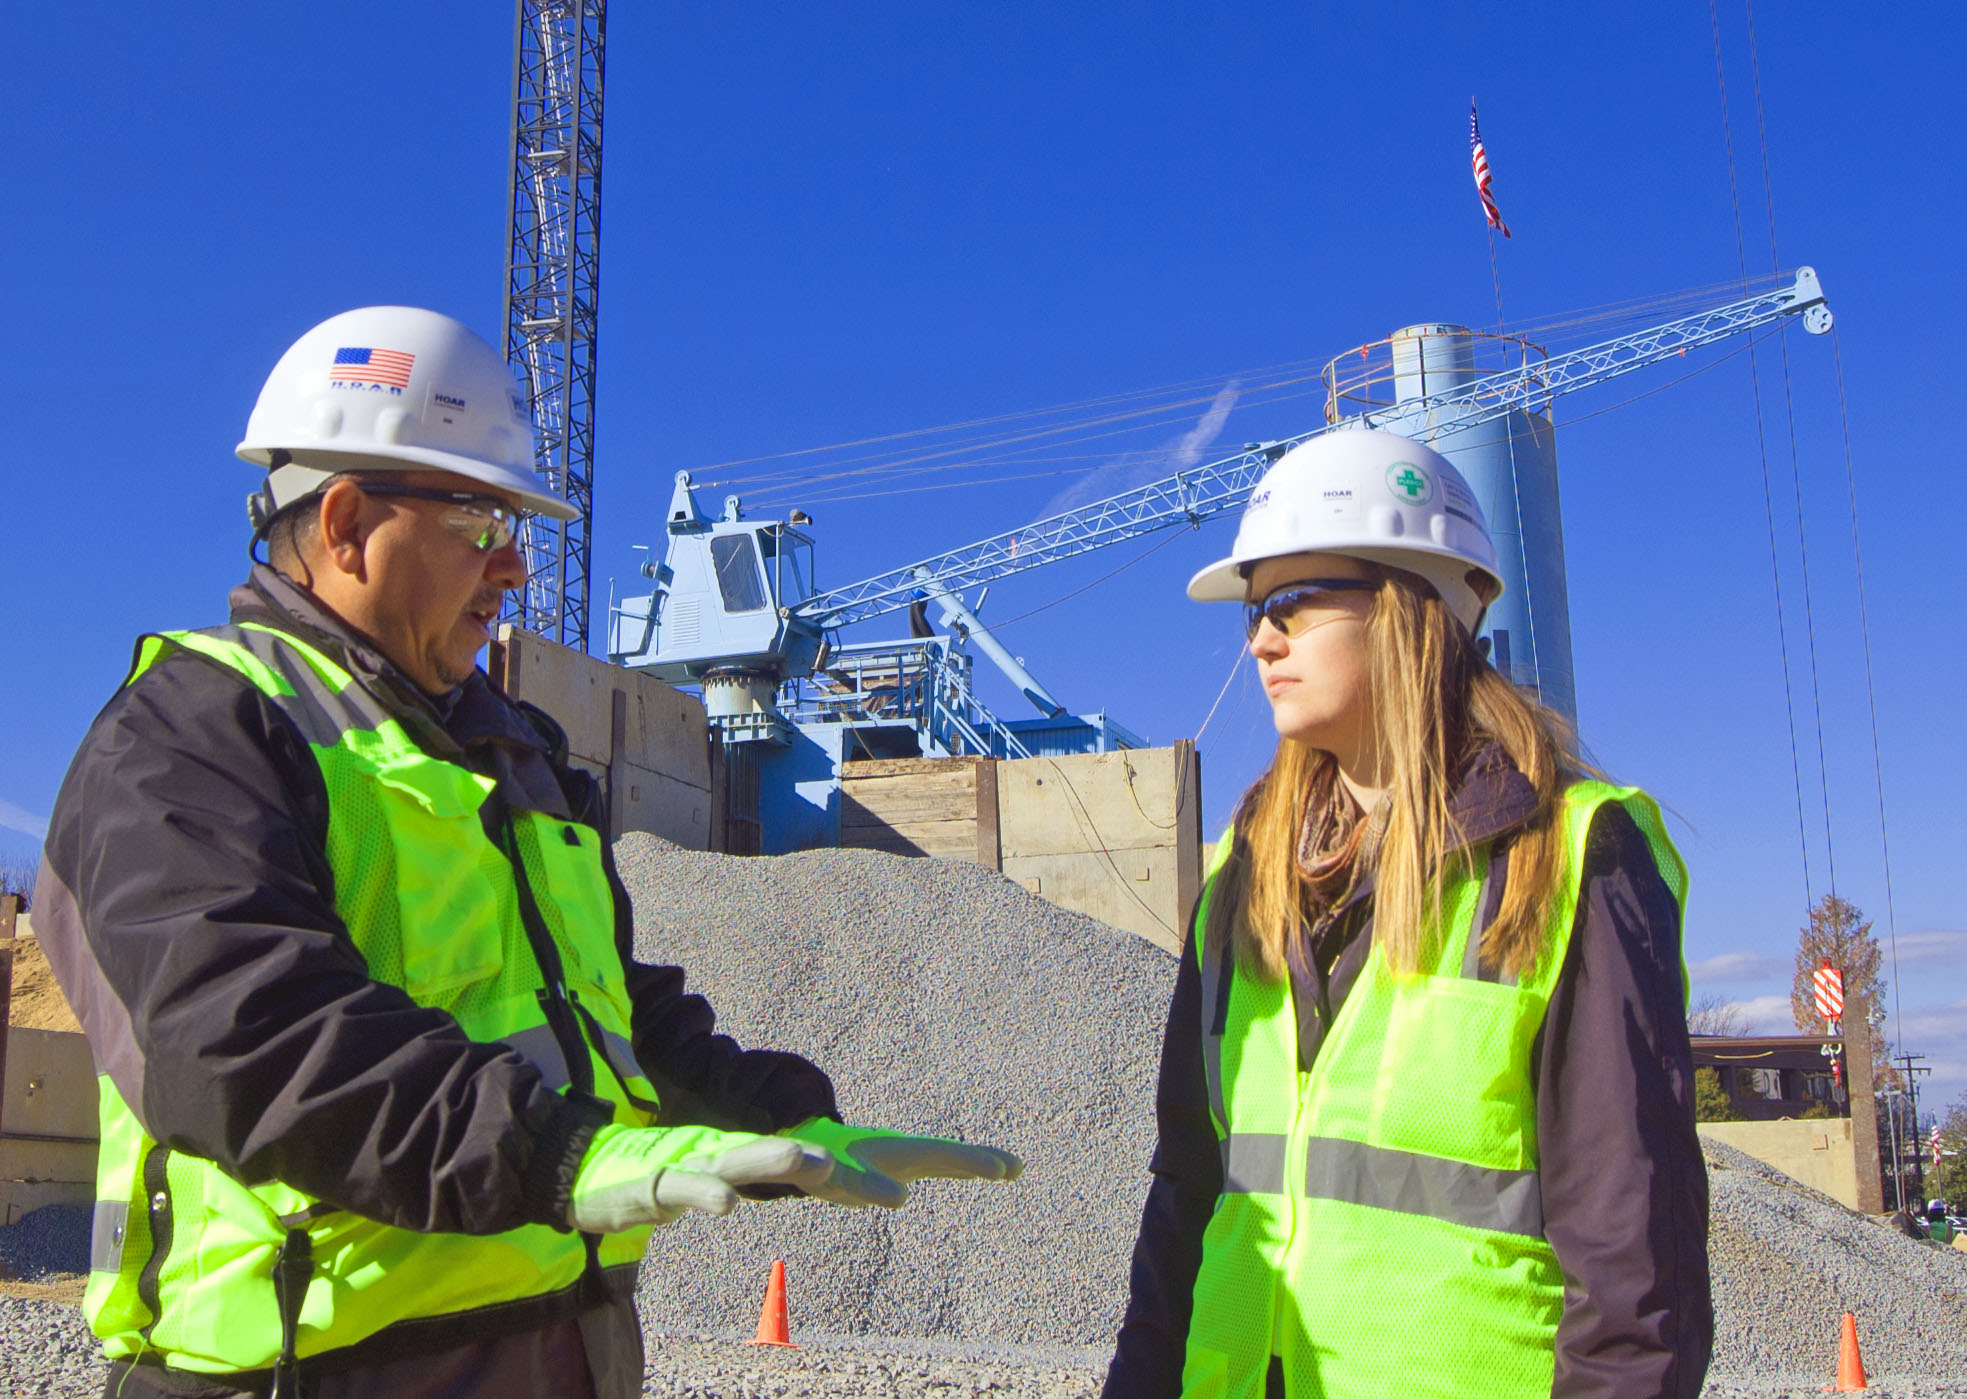 Safety officer discussing ongoing project with marketing coordinator